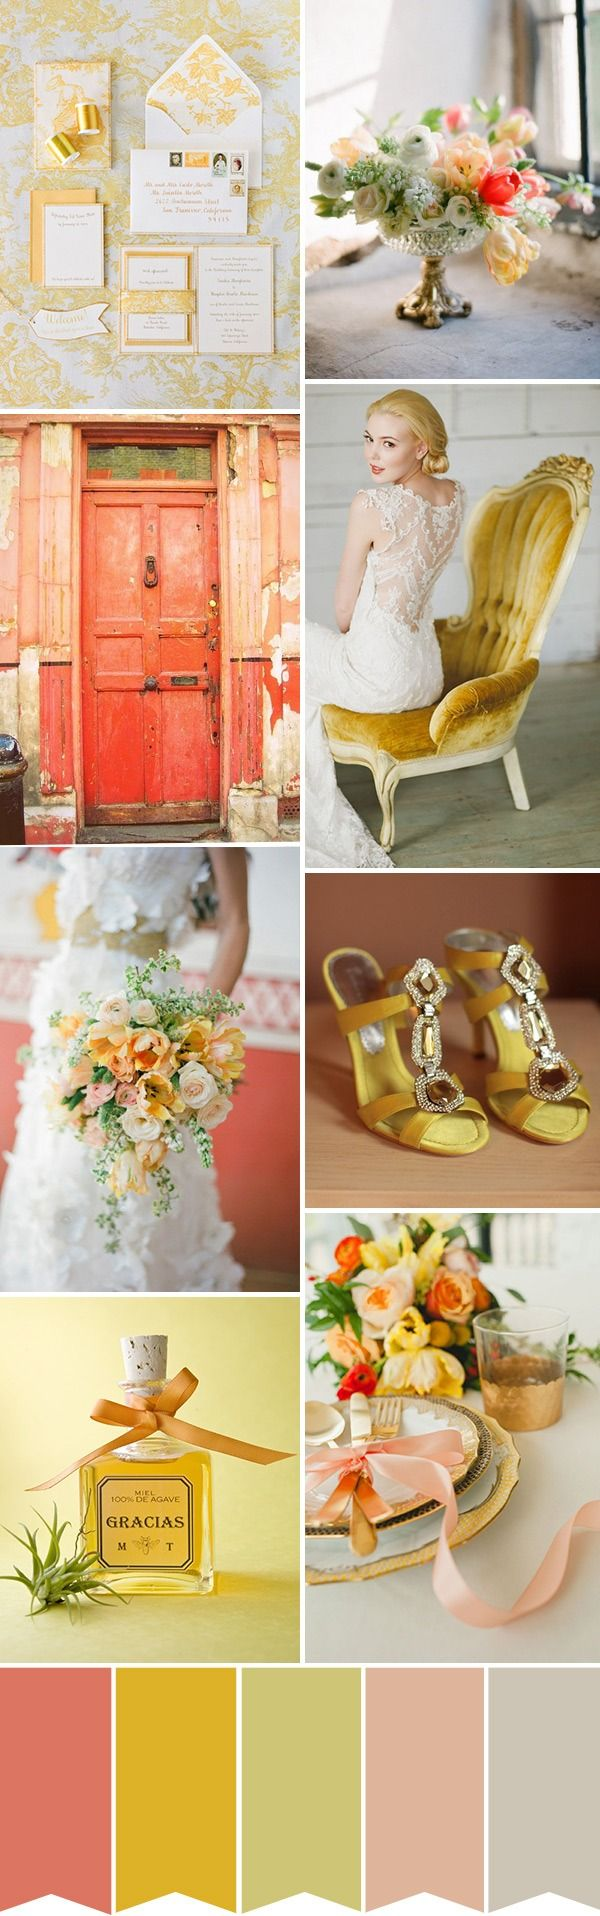 coral lemon yellow wedding colour palette - bright, sunny, happy!